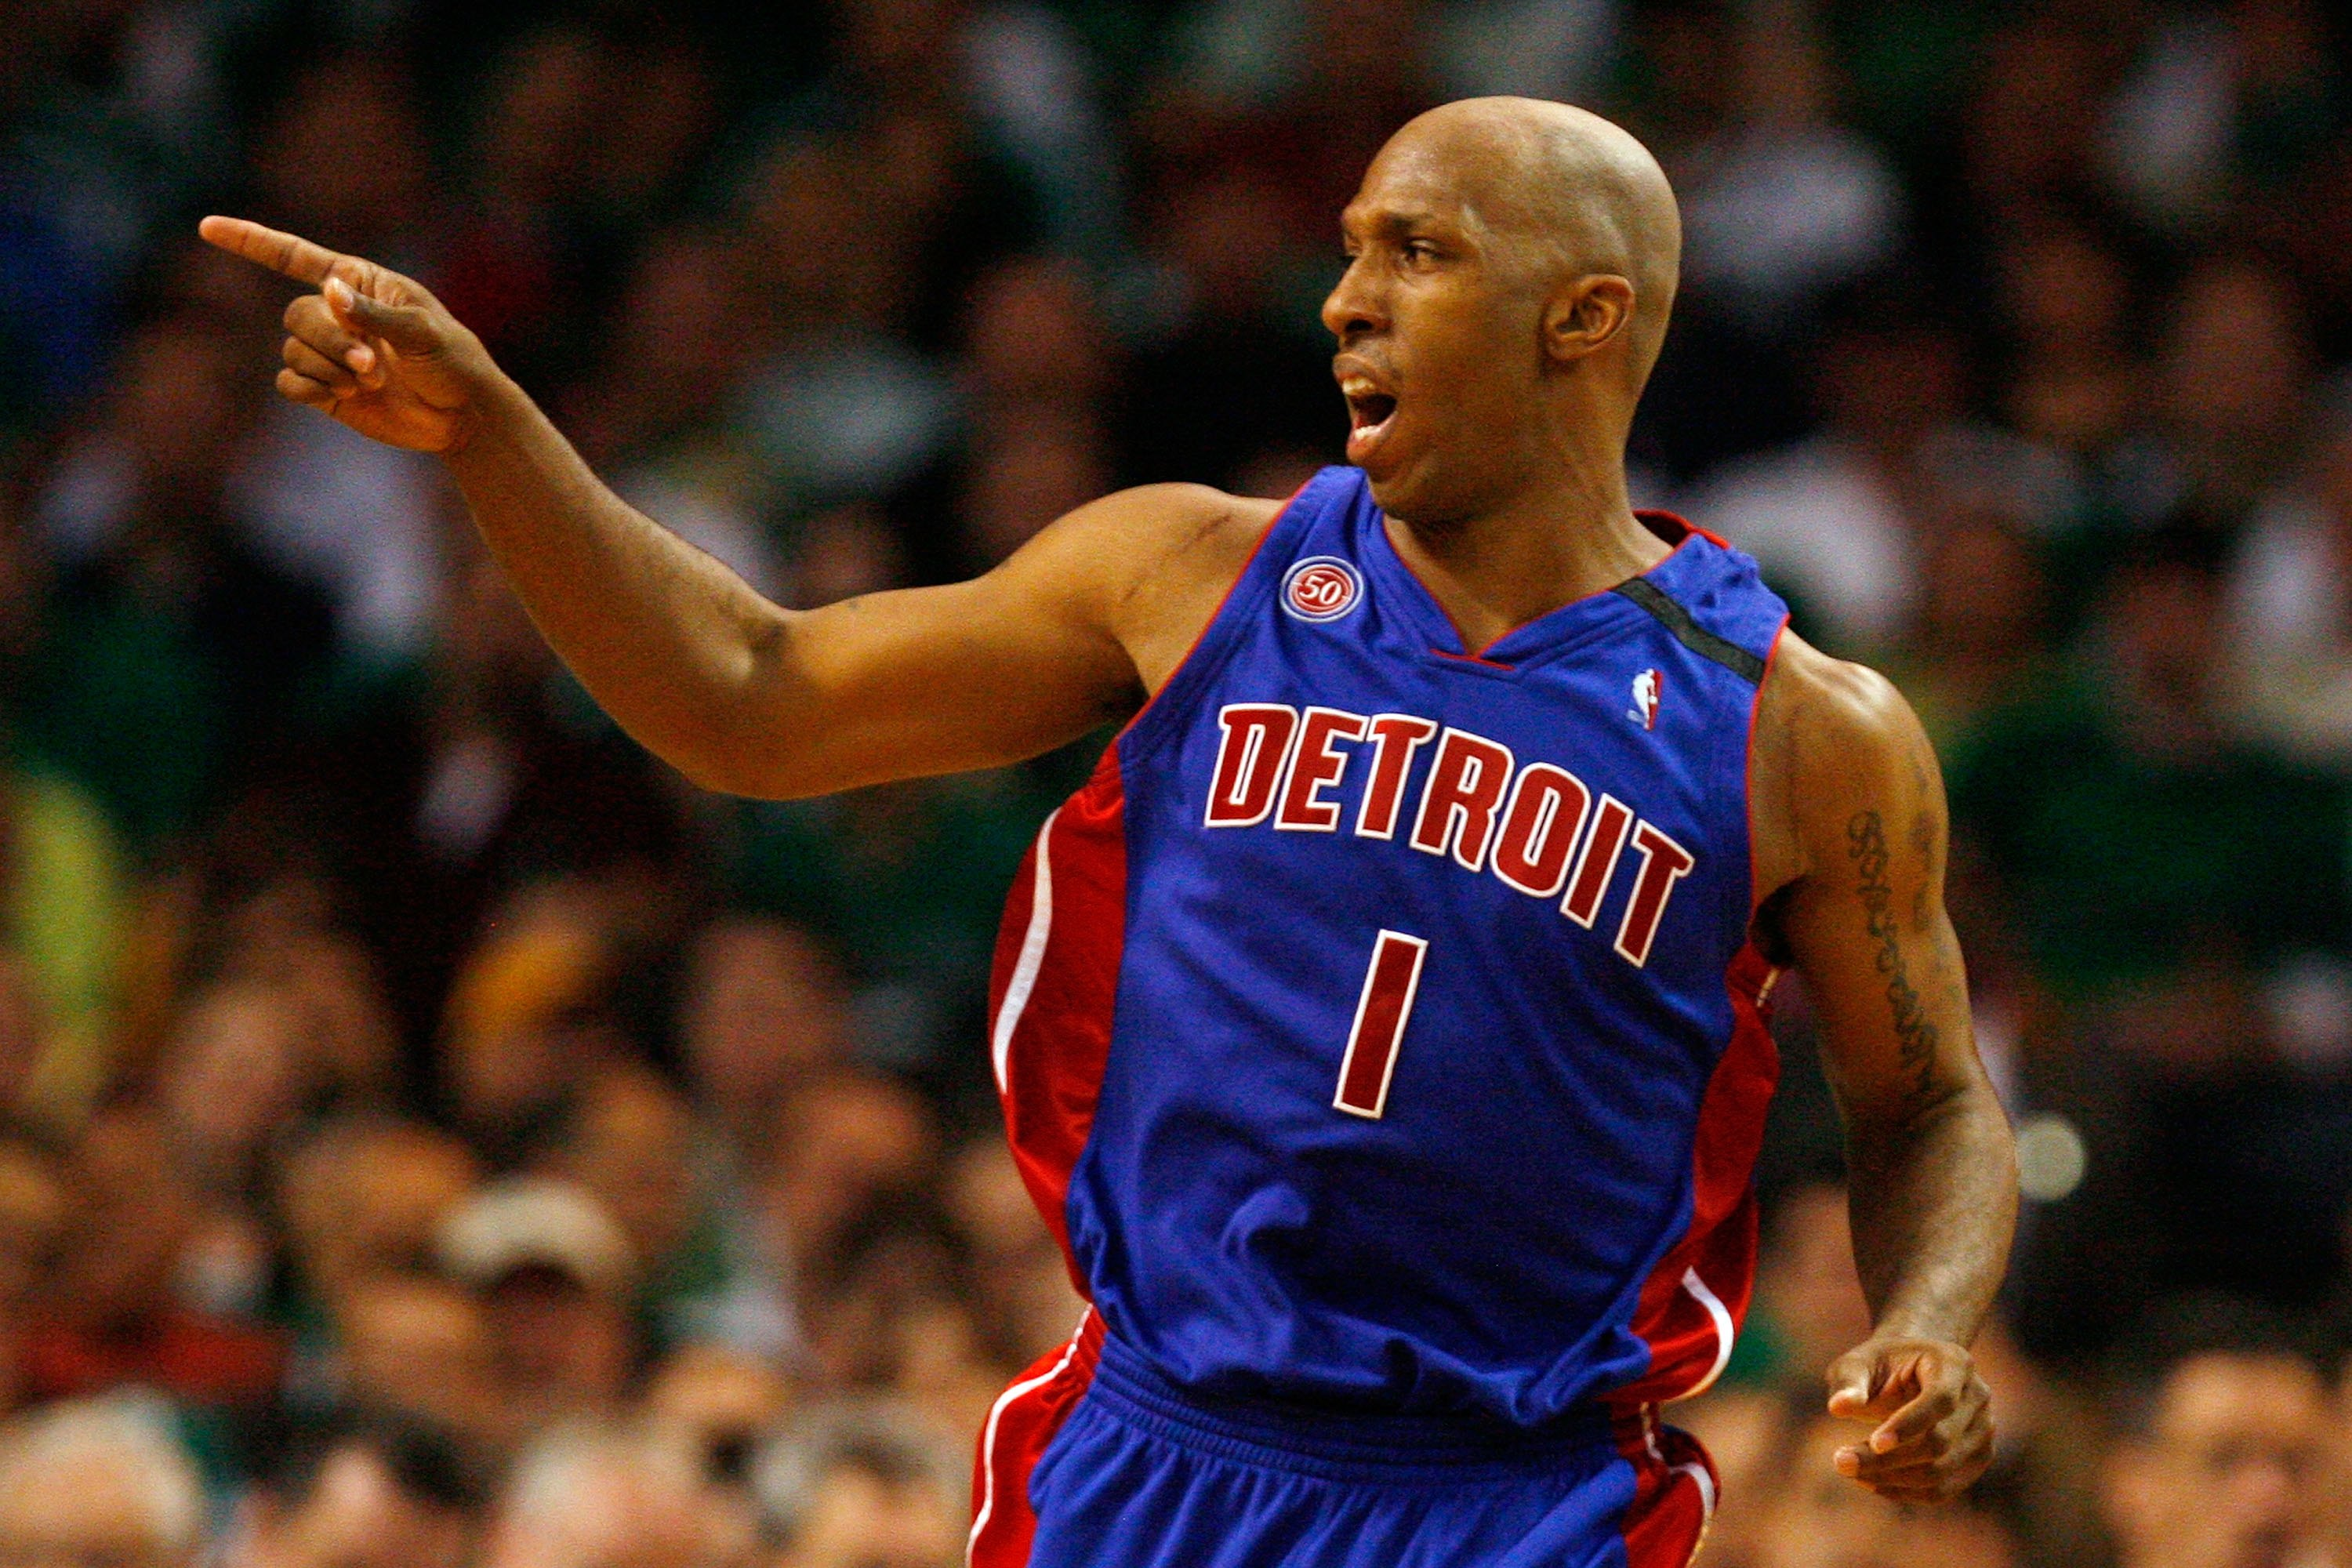 Could an all time Pistons super team beat these Warriors